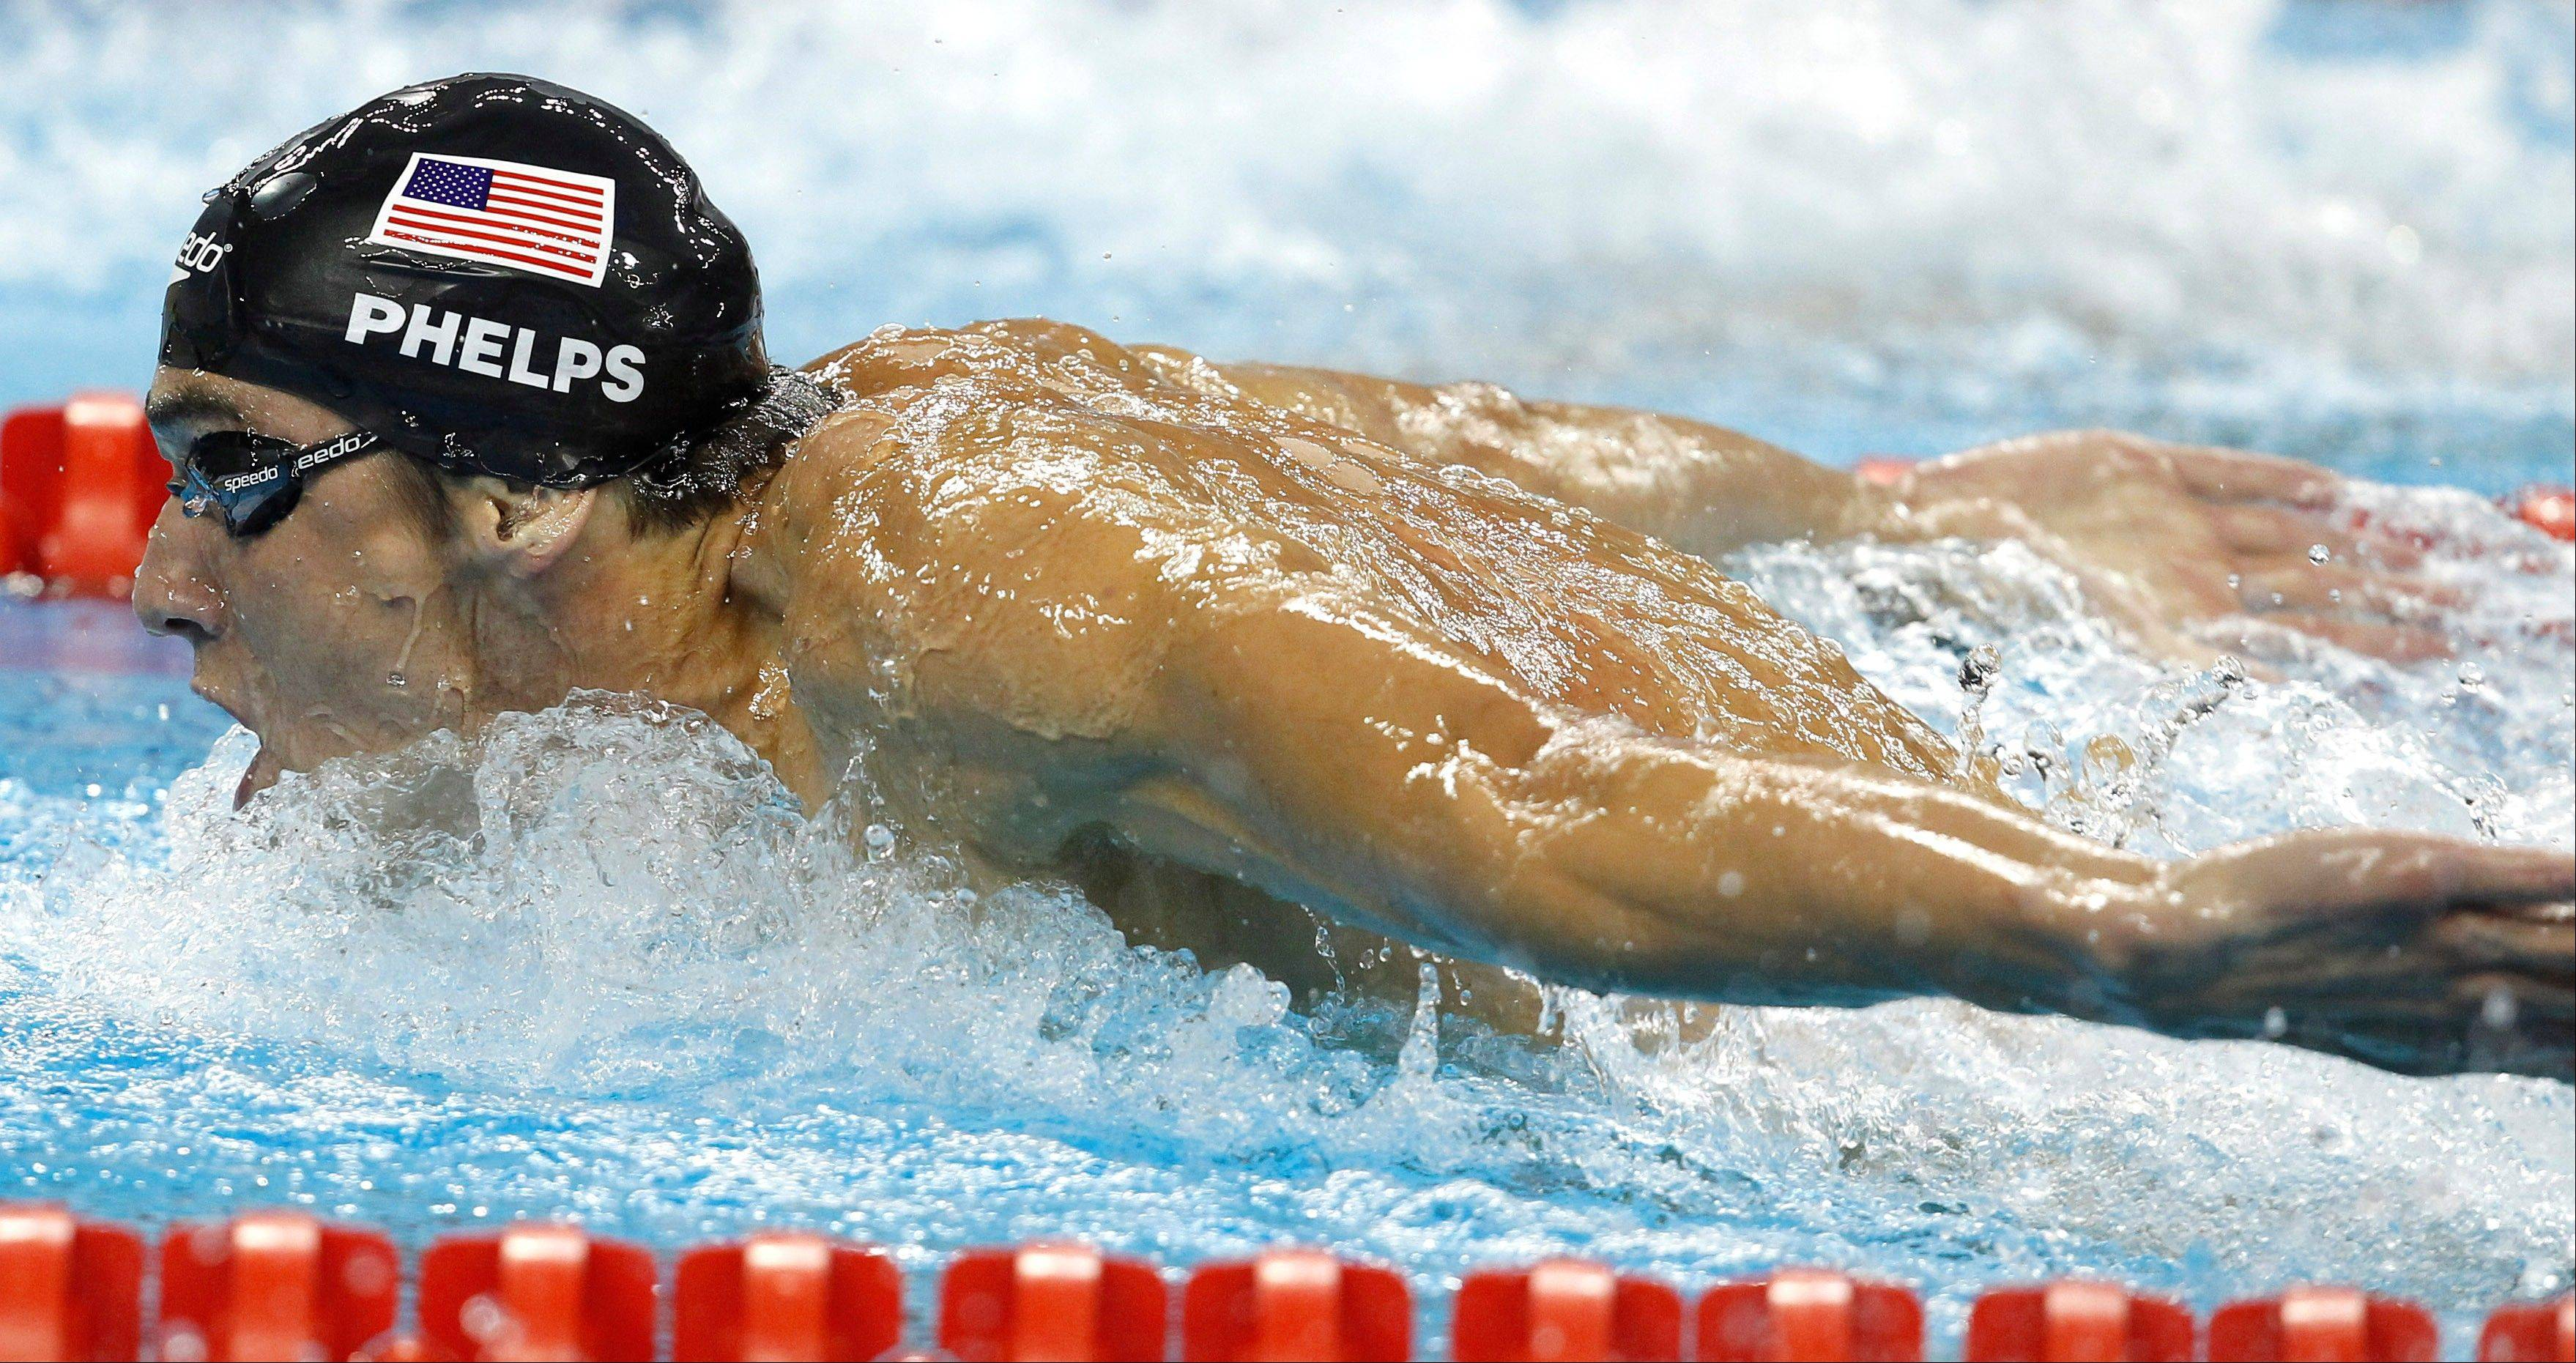 Michael Phelps heads for victory in the 200-meter butterfly at the swimming world championships in Shanghai on Wednesday.